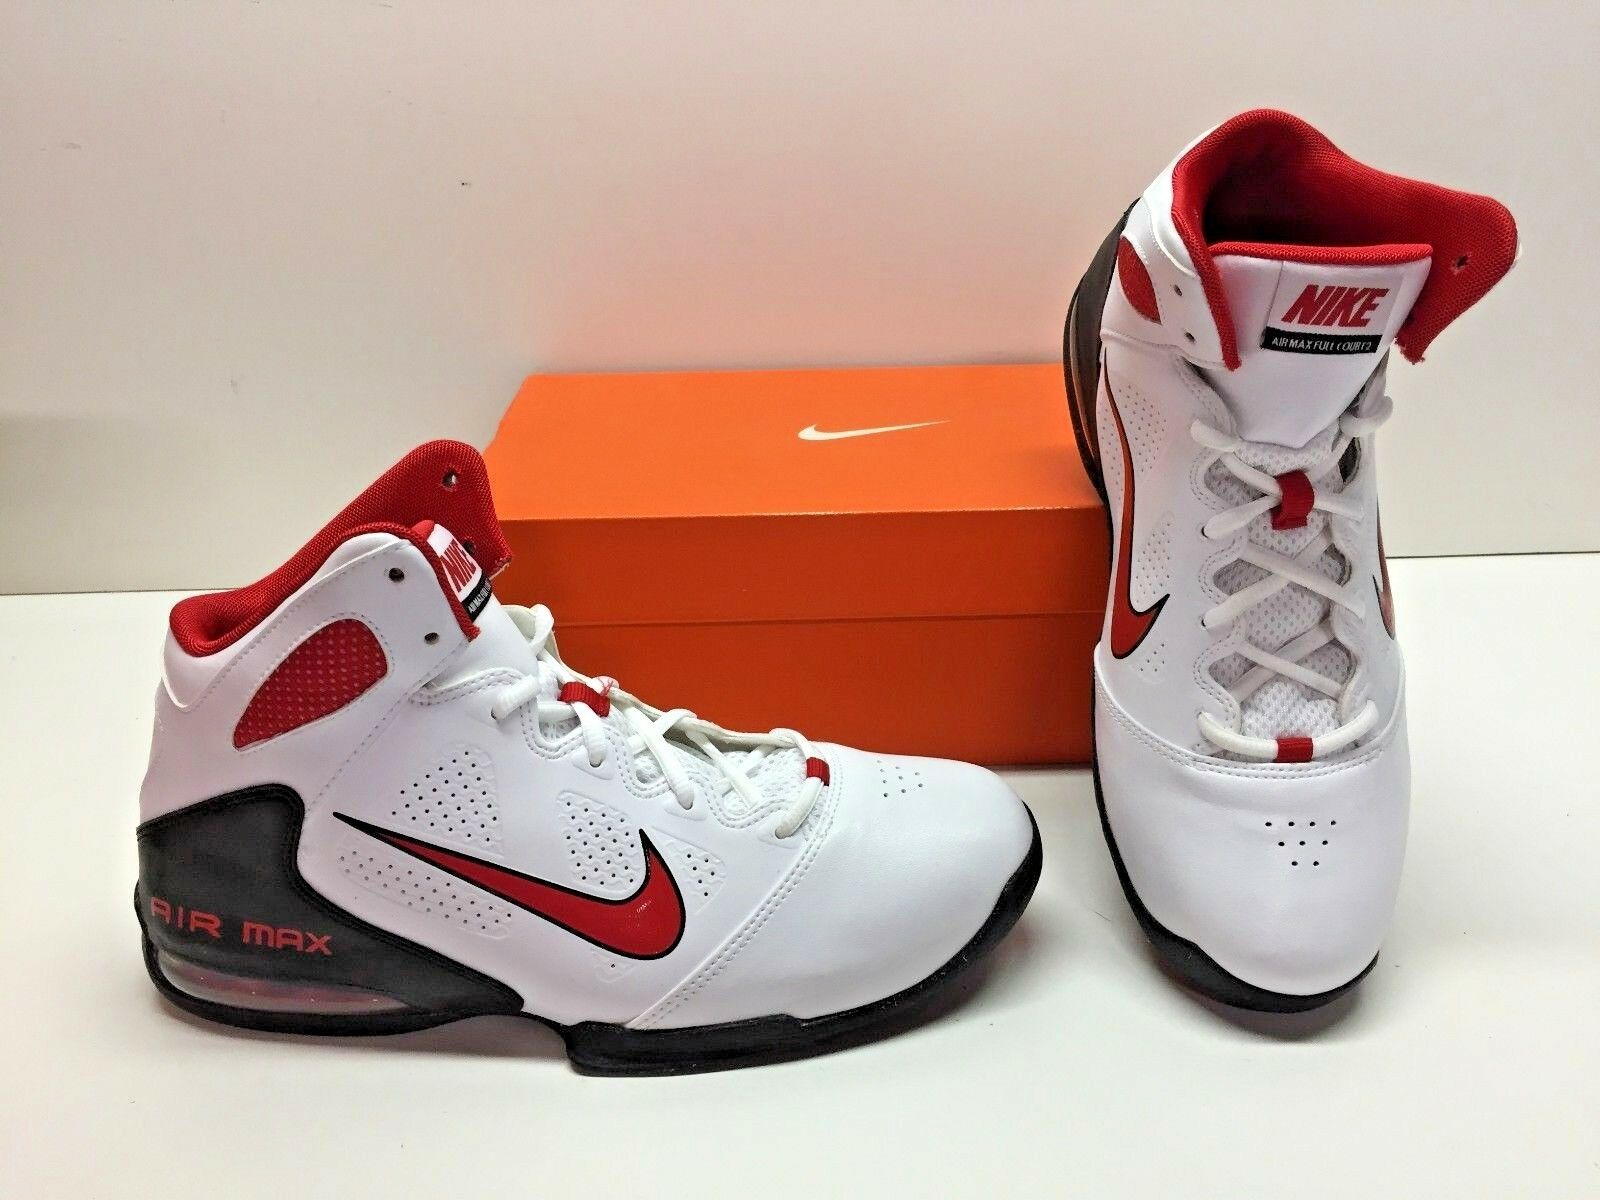 Nike Air Max Full Court 2 II Basketball White Athletic Sneakers Shoes Mens 8